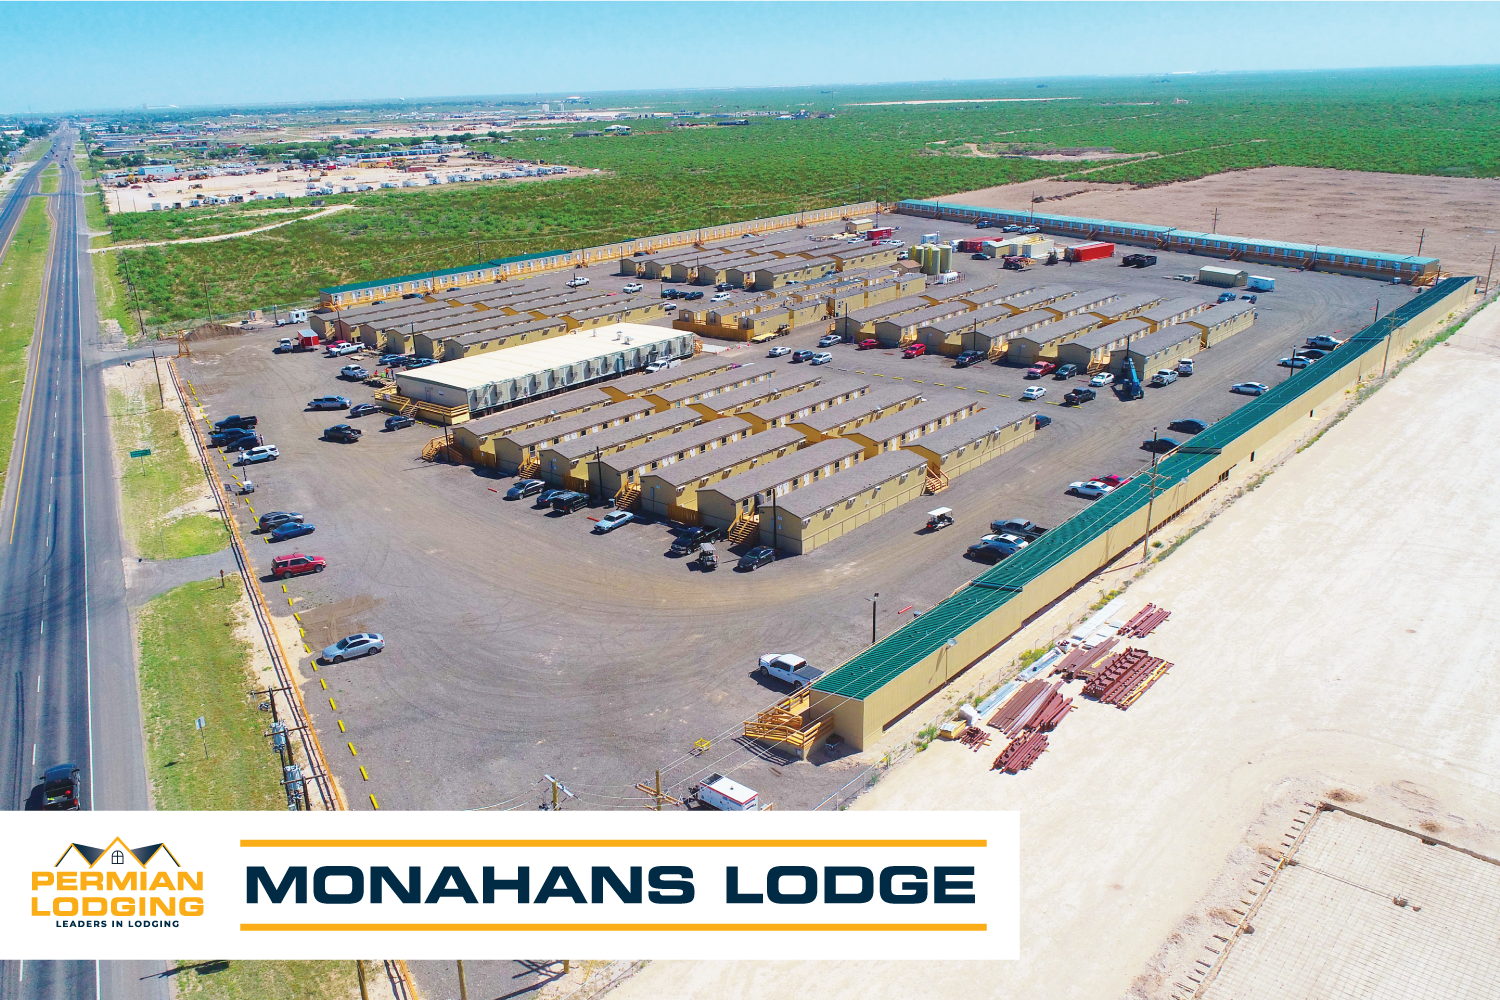 Monahans Lodge